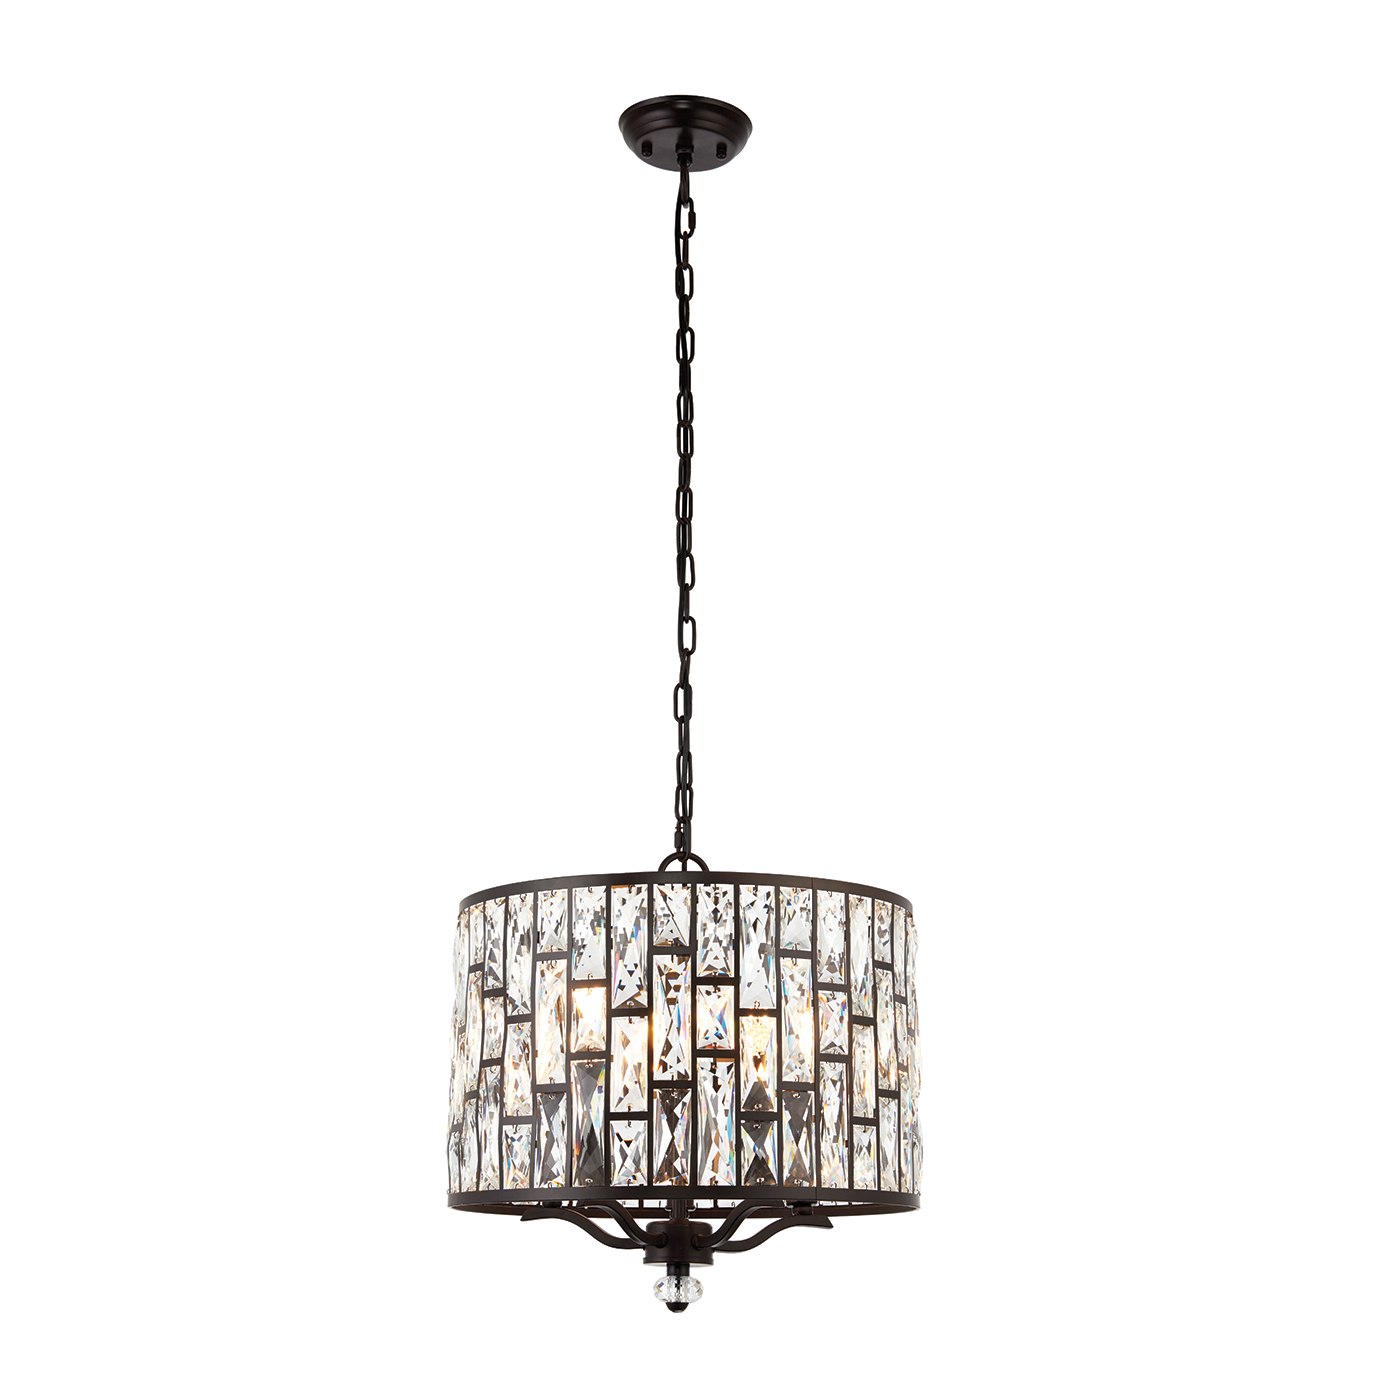 Endon Belle pendant 5x 40W Dark bronze effect plate